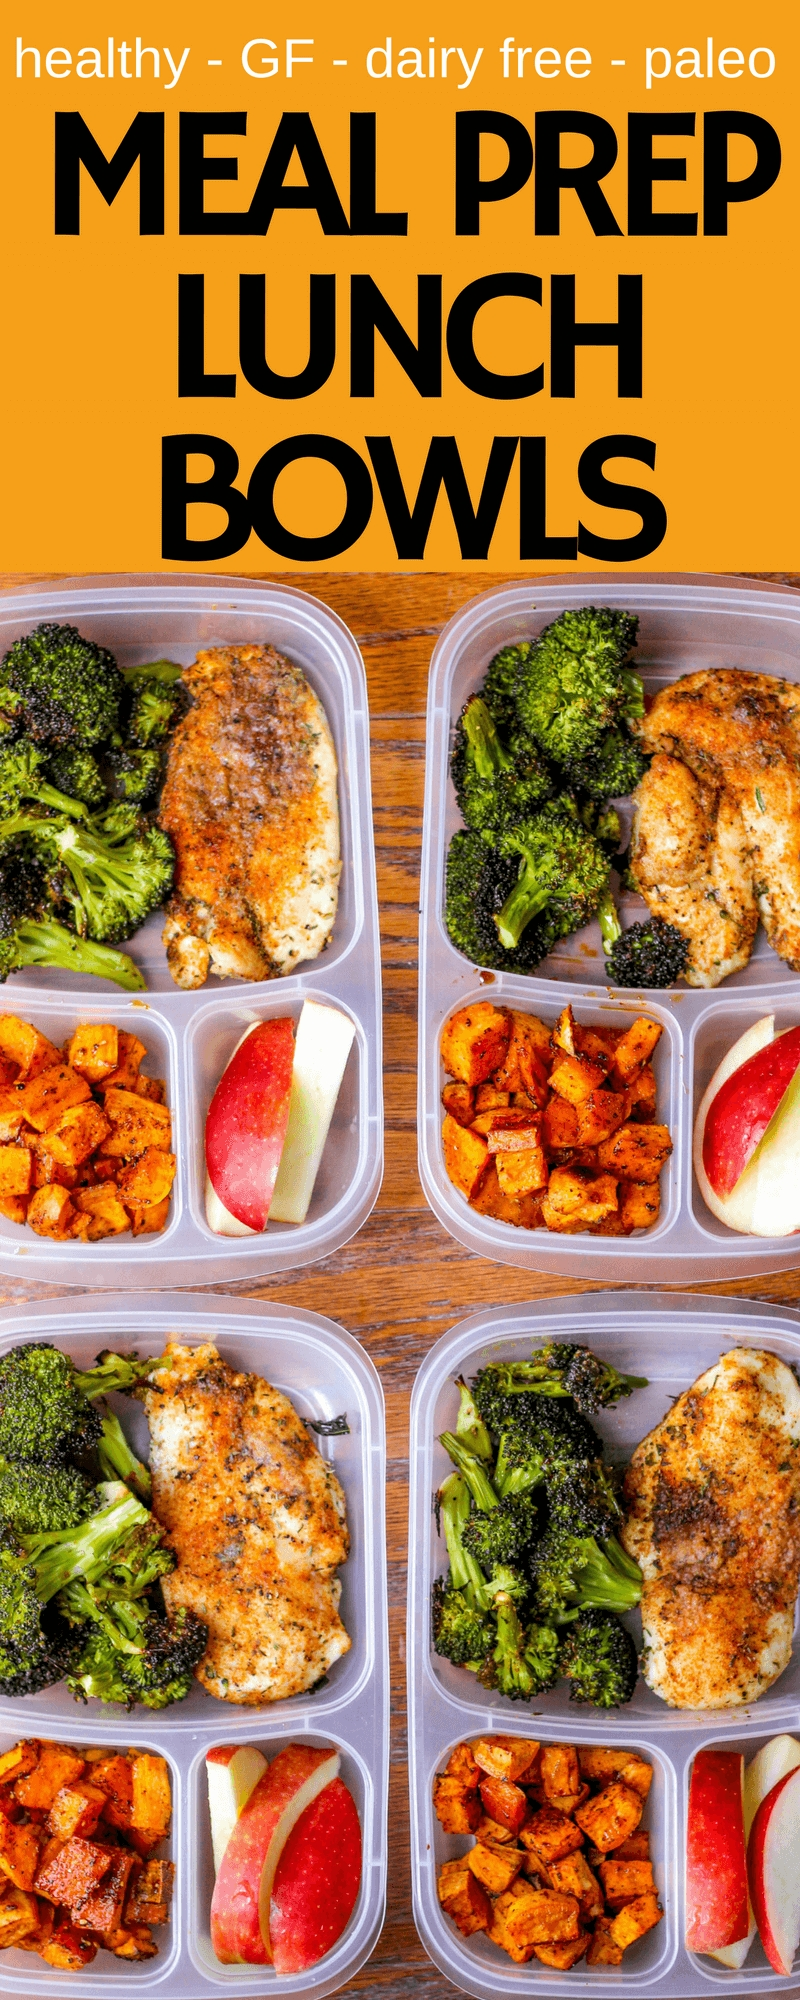 10 Best Paleo Lunch Ideas At Work meal prep lunch bowls with spicy chicken roasted lemon broccoli